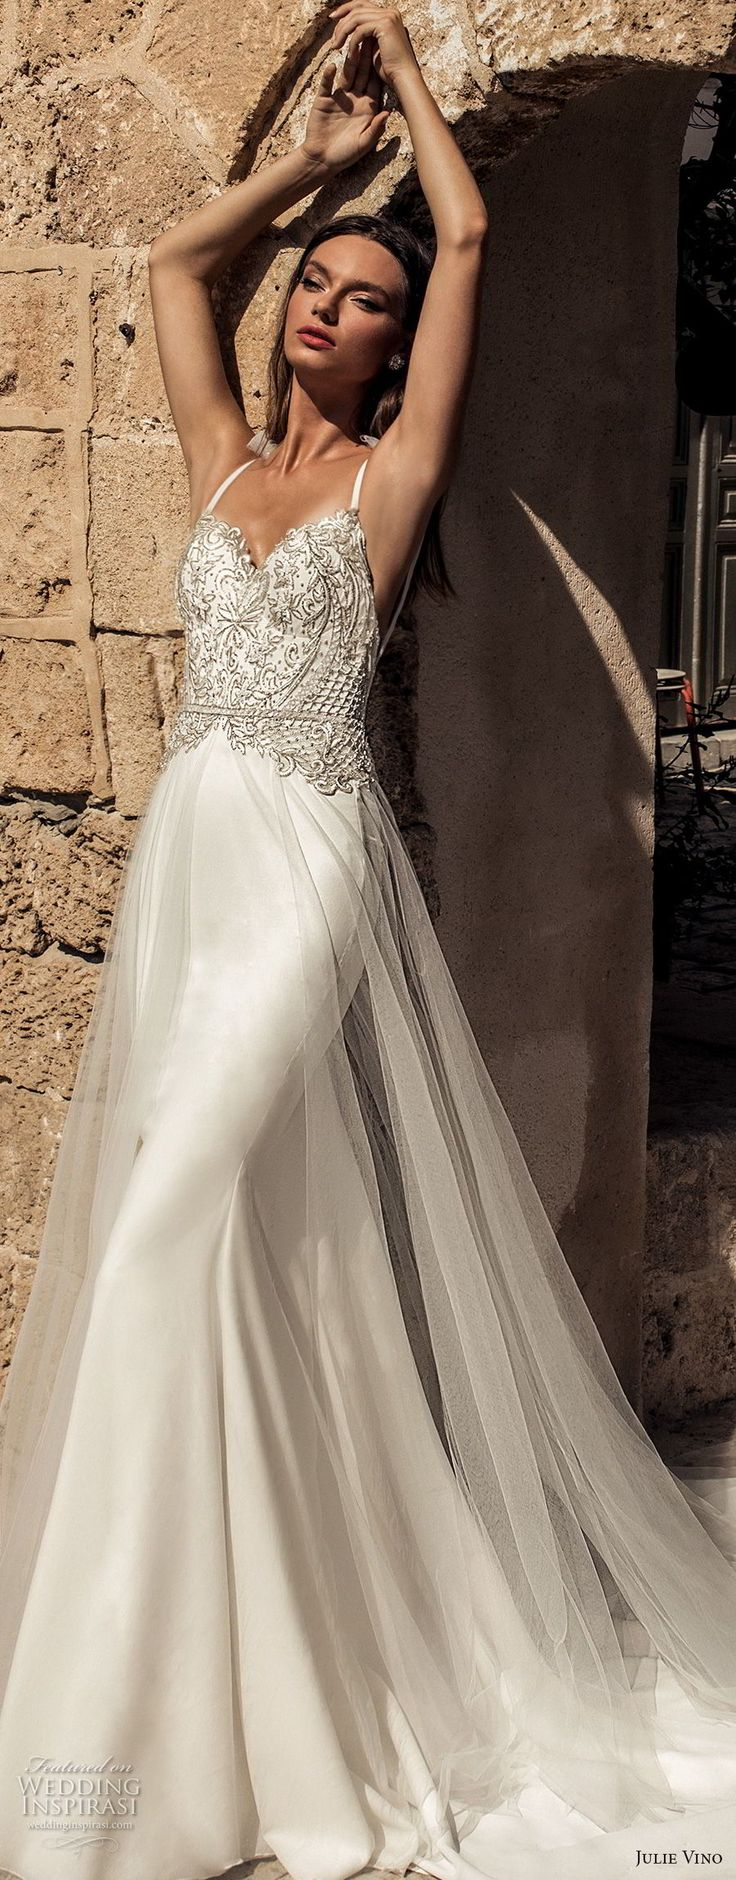 Best Wedding Dresses Gowns Images On Pinterest Marriage